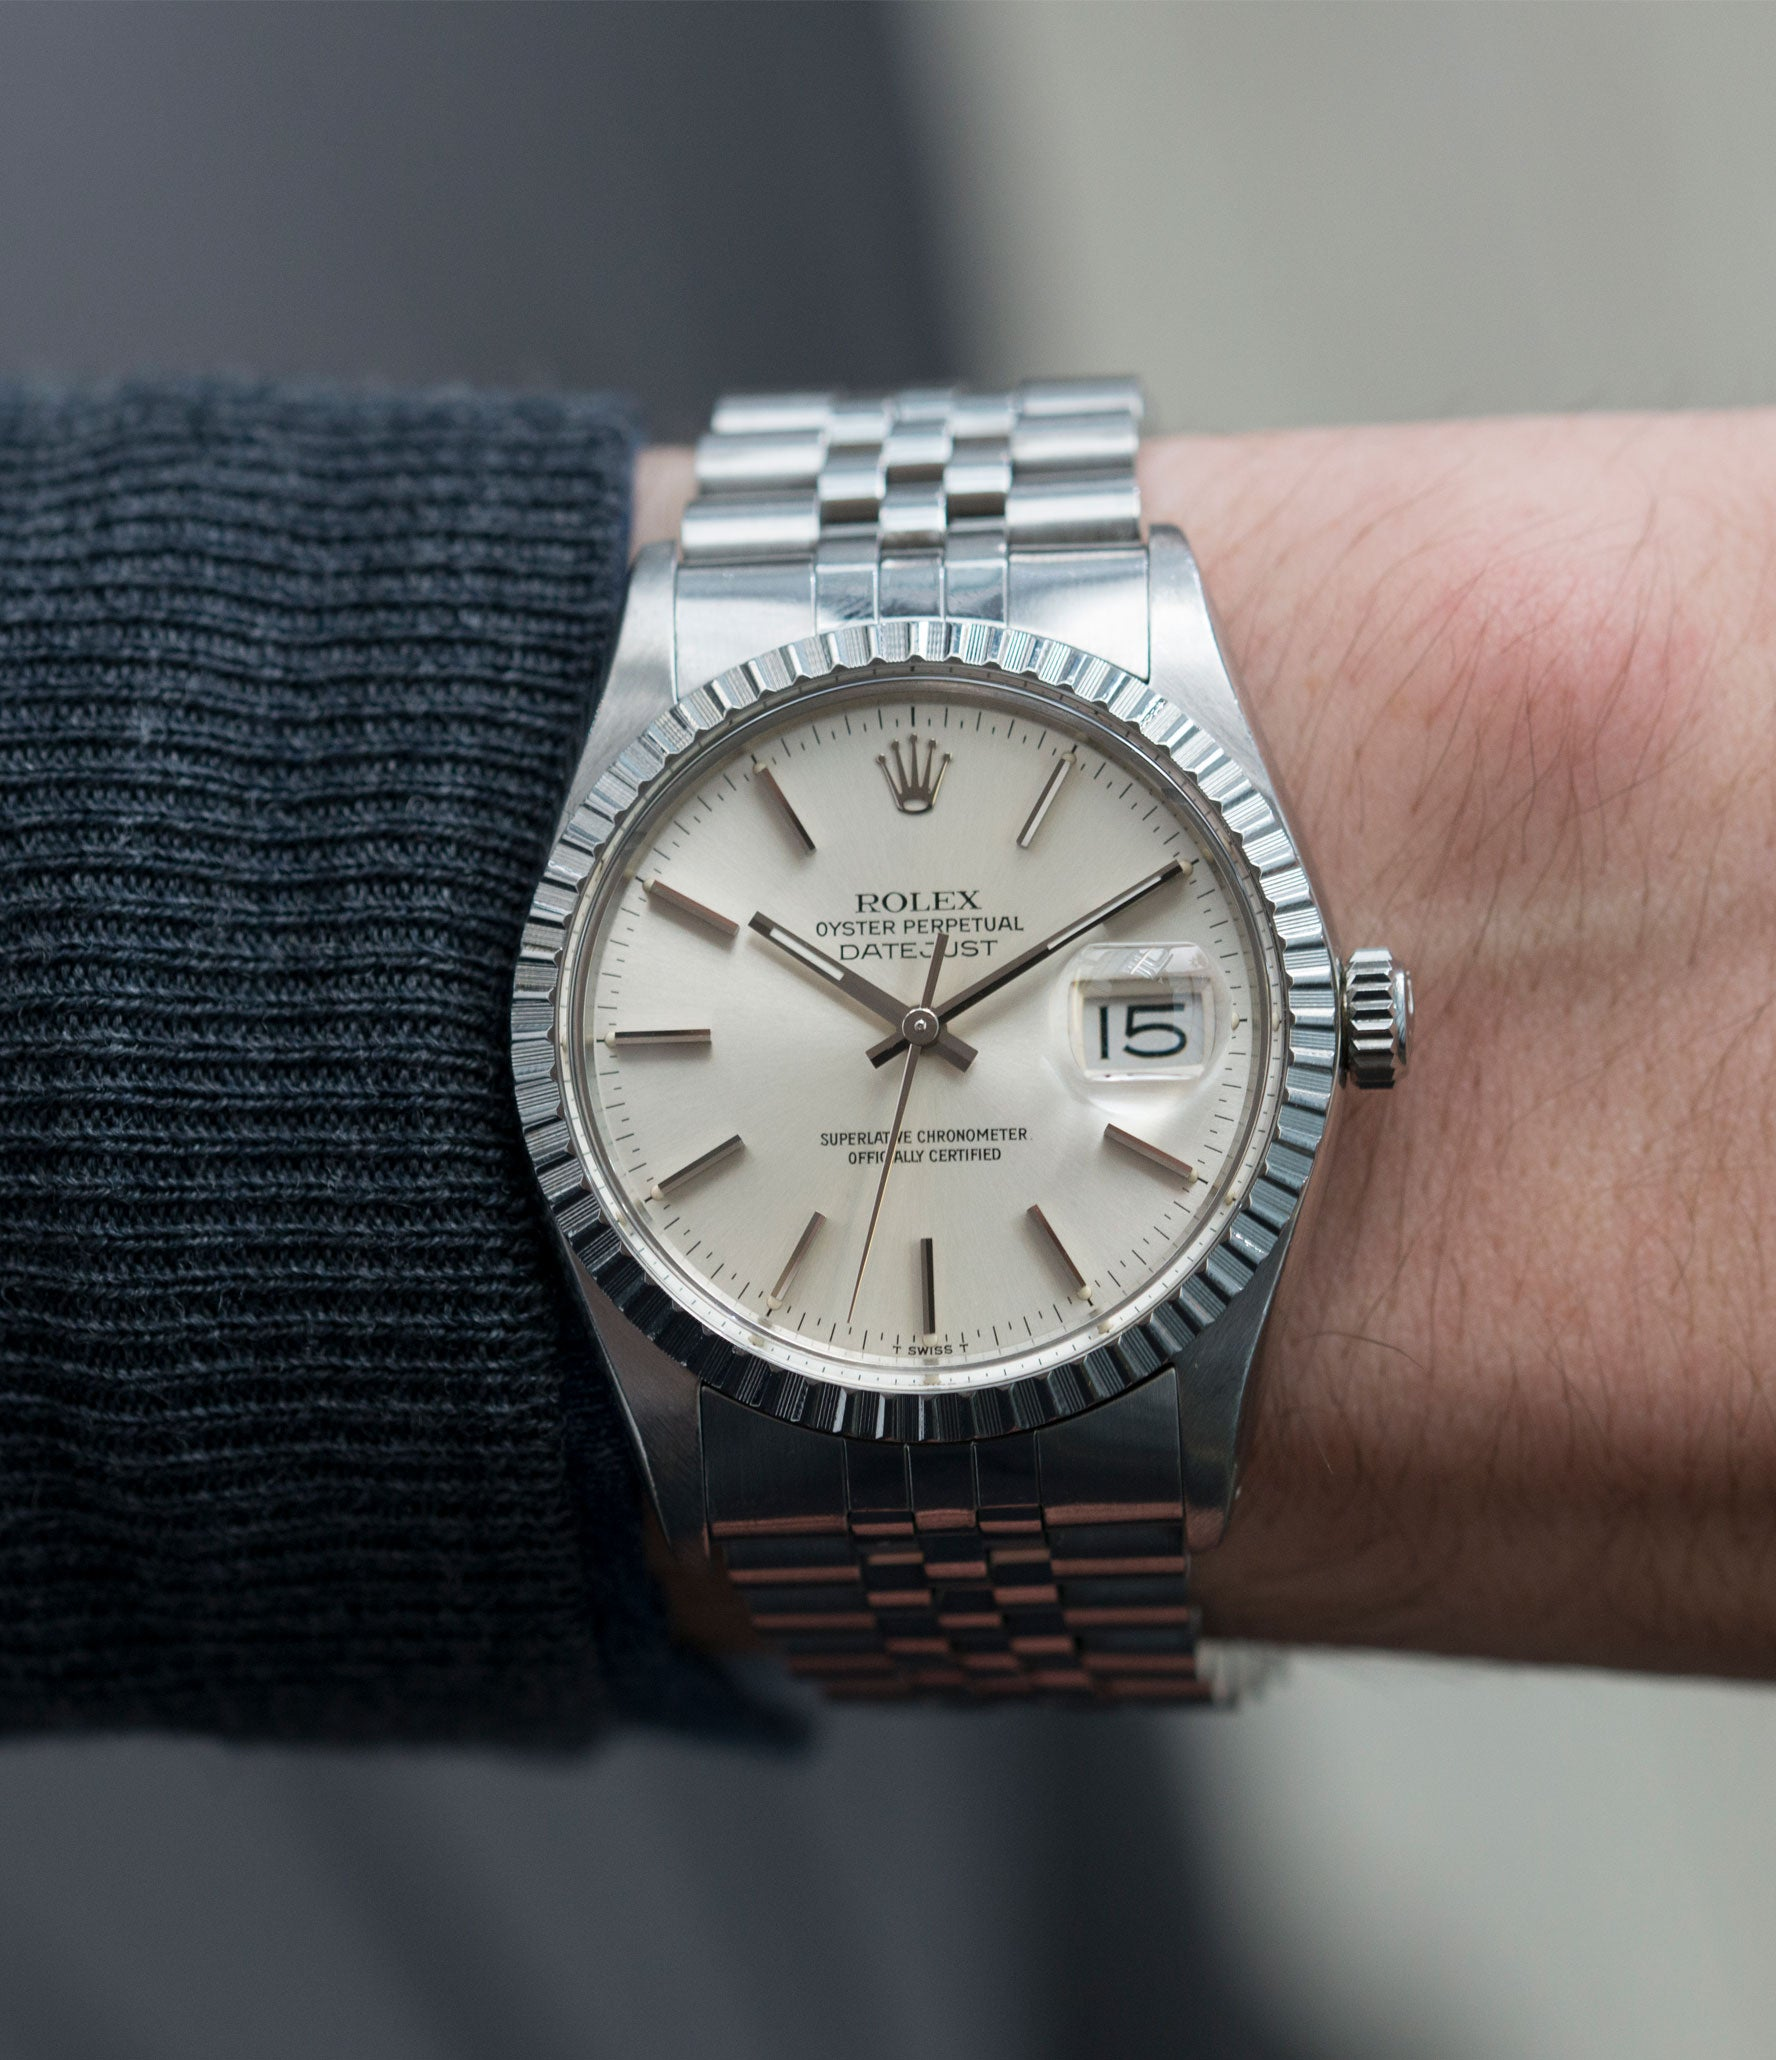 men's luxury wristwatch vintage full set Rolex Datejust 16030 steel automatic silver dial watch Jubilee bracelet for sale online at A Collected Man London UK vintage watch specialist